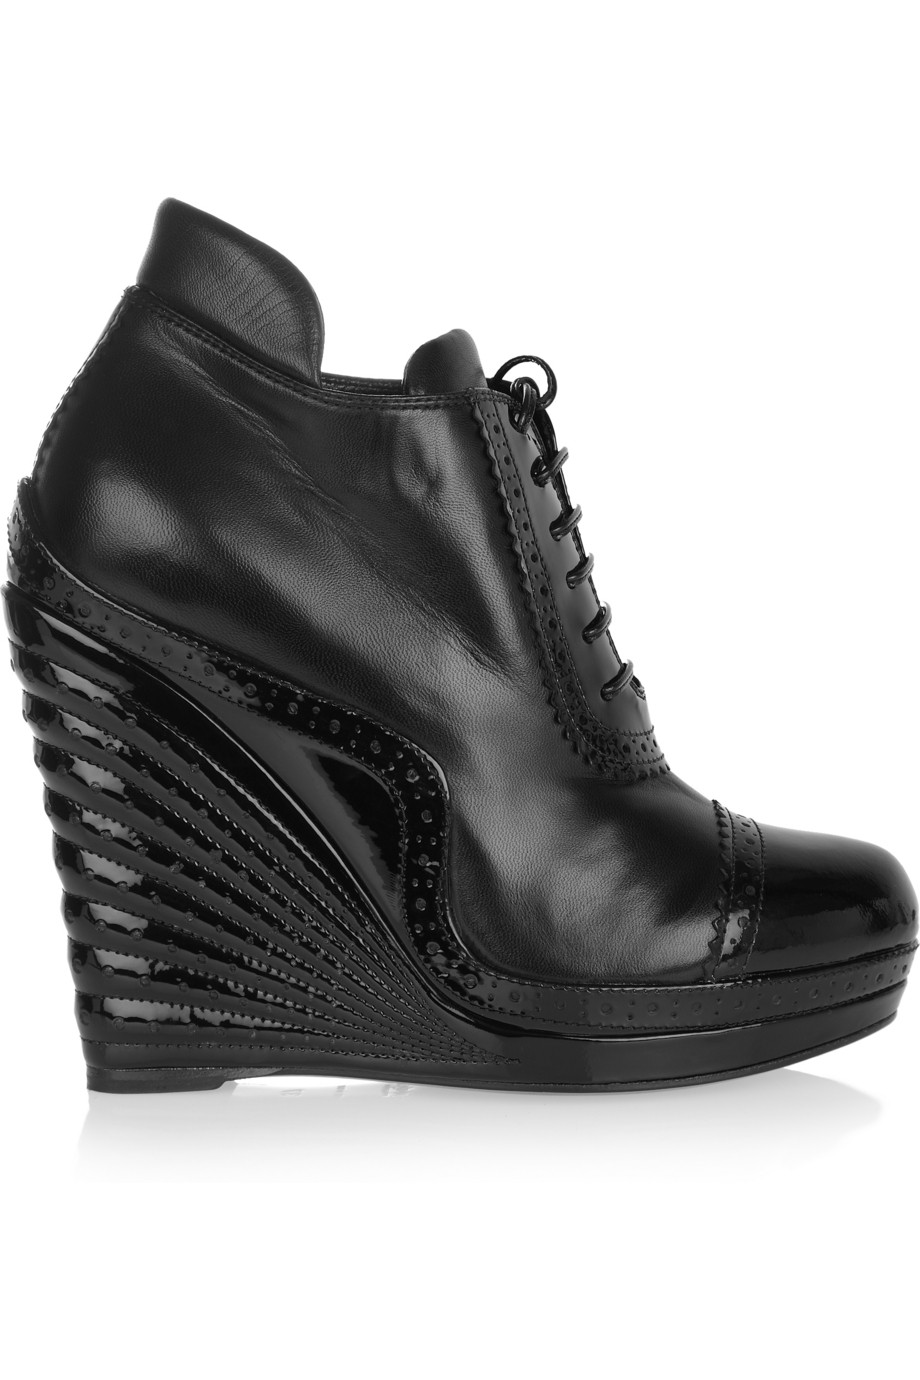 3ed0eb9e14f Saint Laurent Leather and Patent-leather Wedge Ankle Boots in Black ...